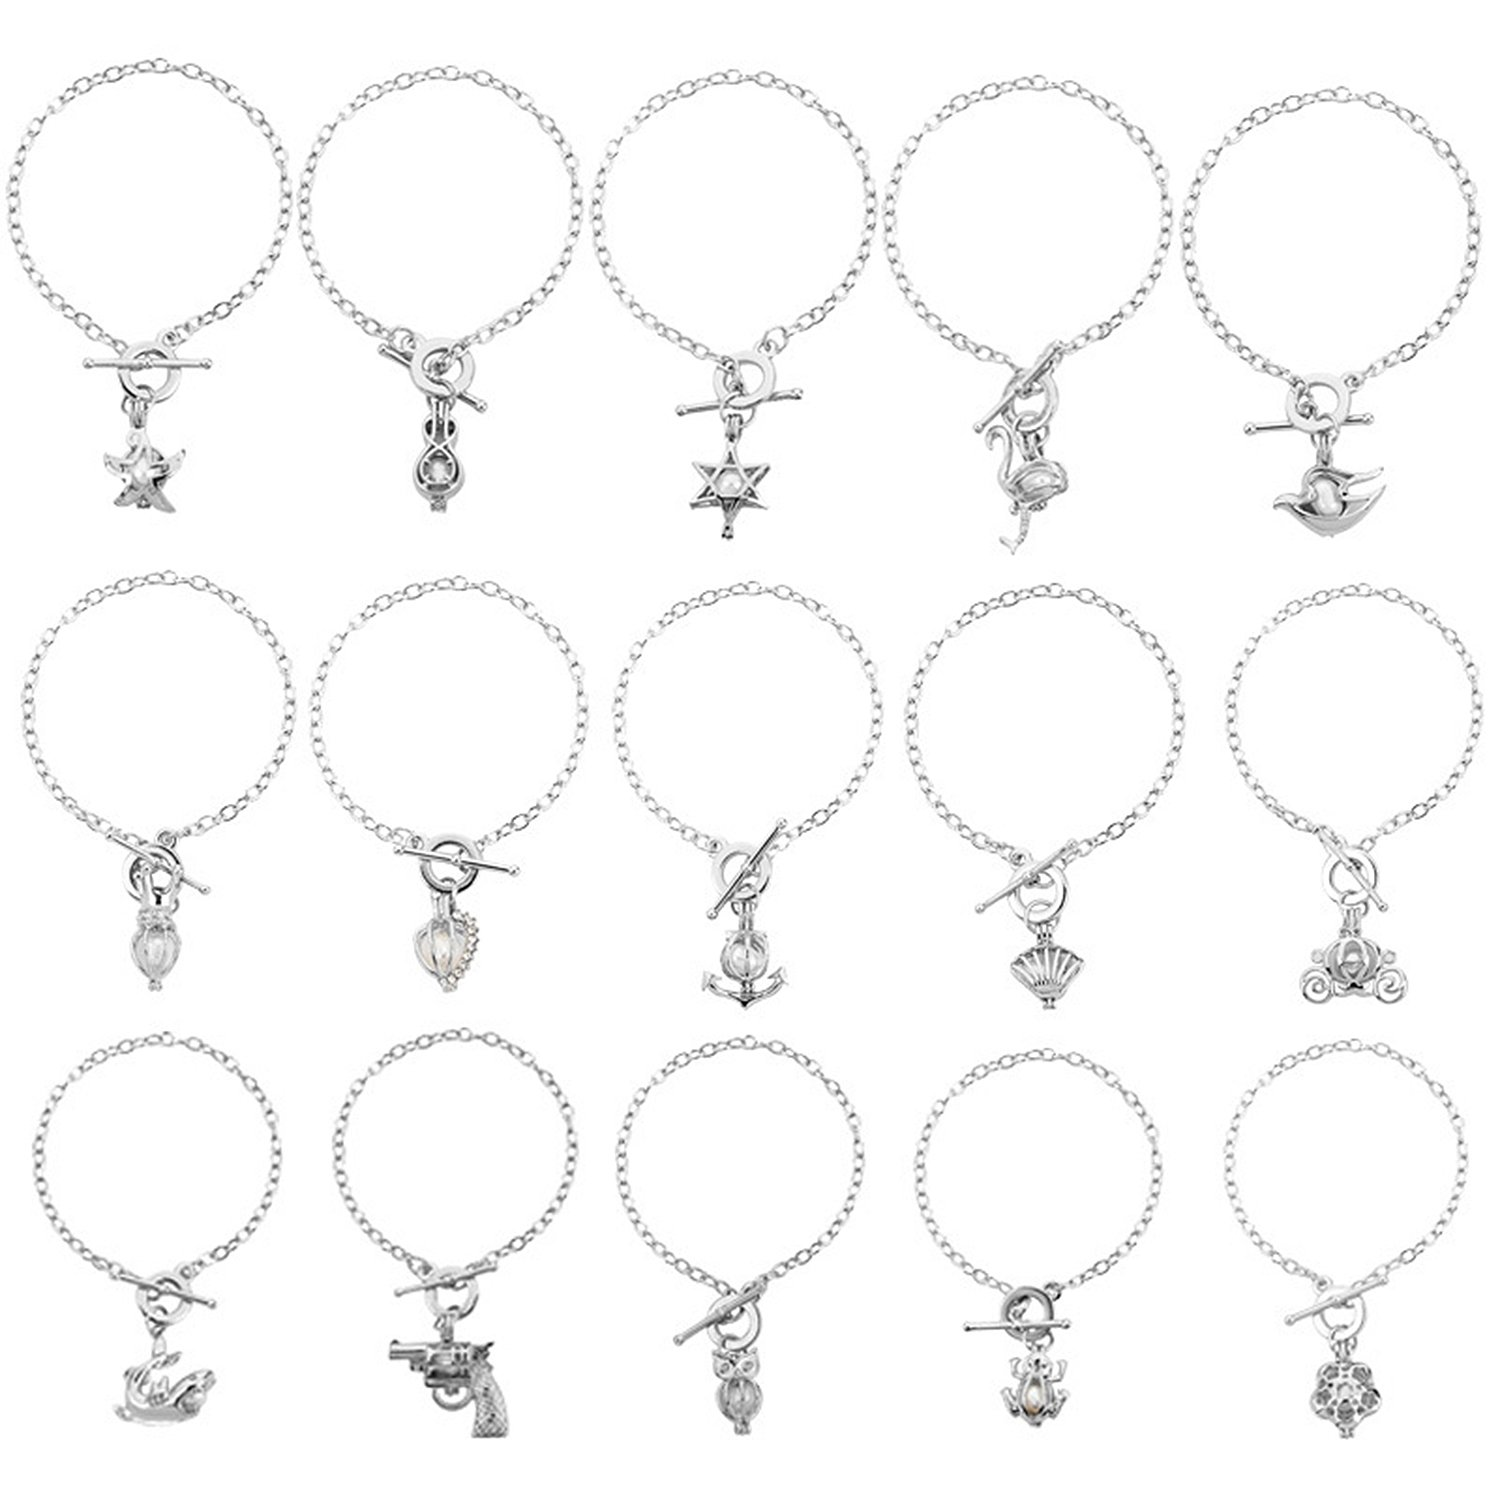 HENGSHENG 15 PCS Bracelet Sets Pearl Oyster Fitting Locket with 1 PC Real Freshwater Pearl in Charm Pendant (cpsl004) (15 PCS)